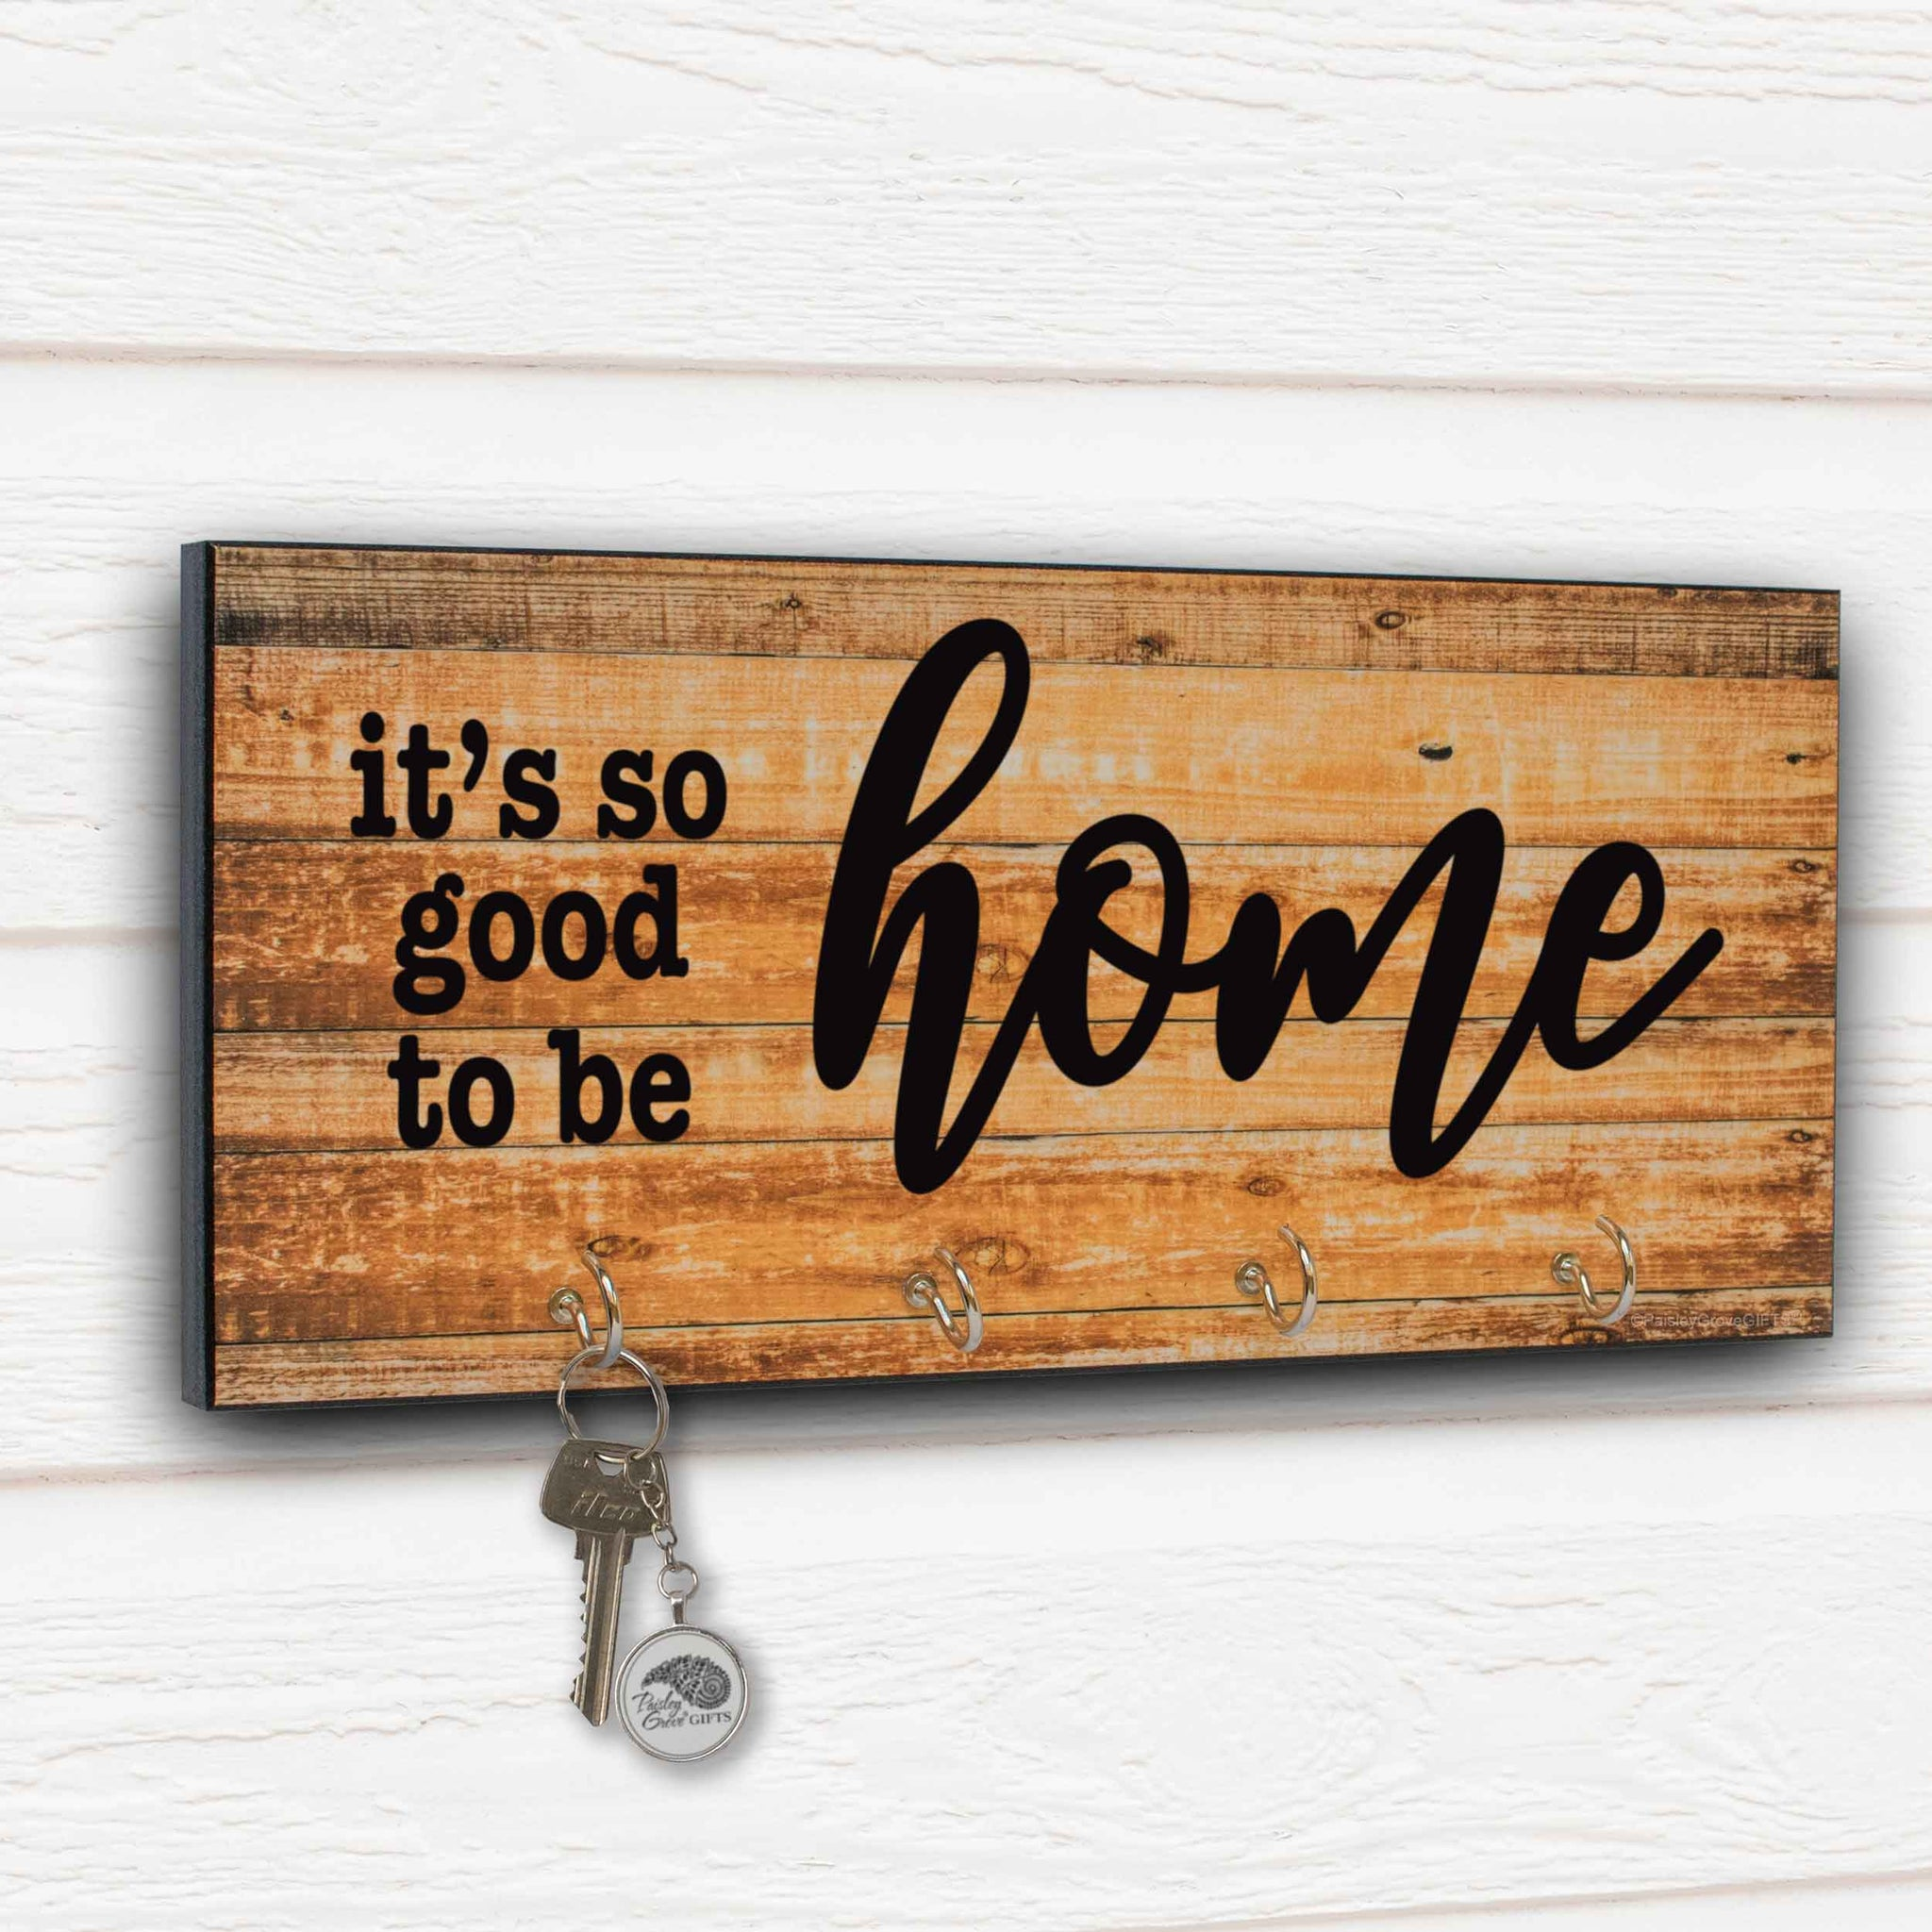 It's so Good To Be Home Key Holder for Wall | S300